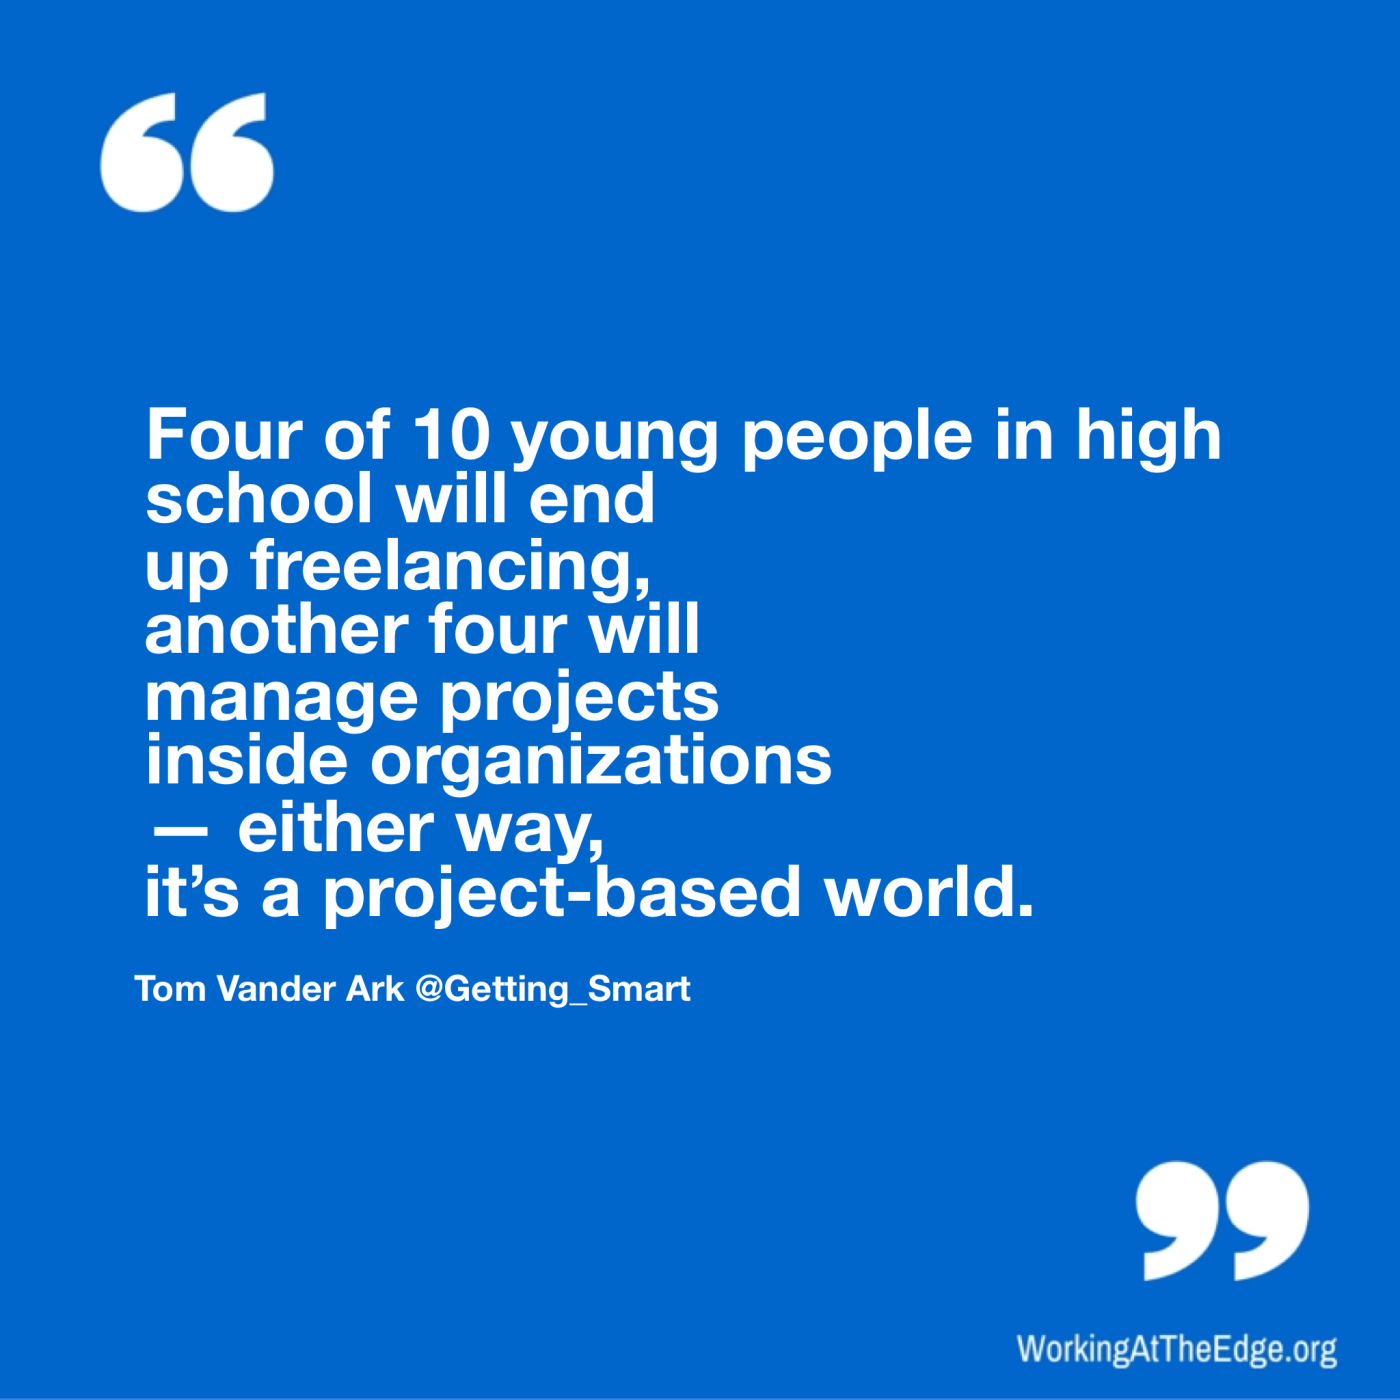 Why projects? #pblchat #satchat #edchat – Inspiration: Images and Quotes